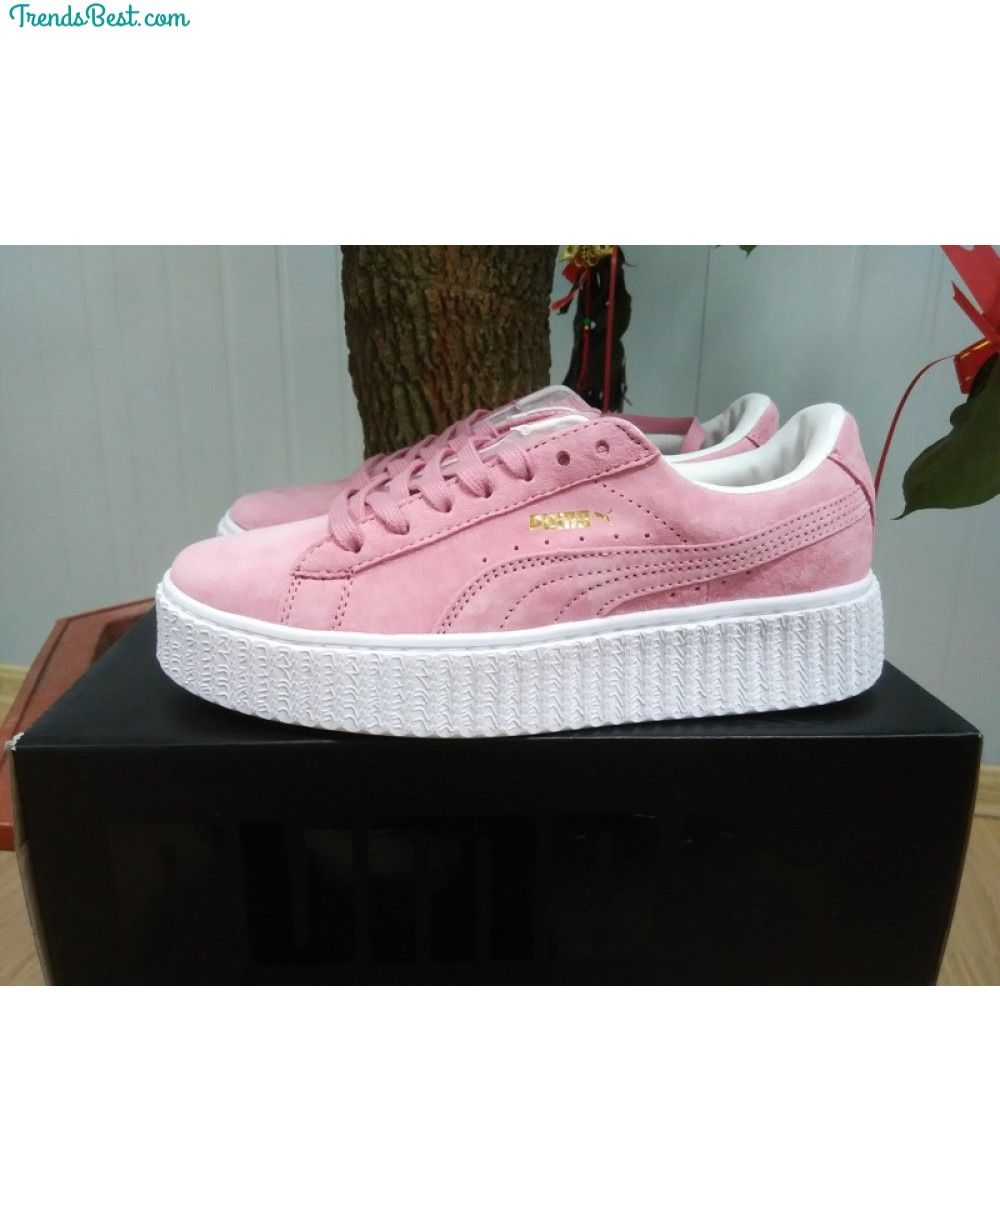 Womens Puma Rihanna X Creepers Casual Shoes Suede Pink White - Puma ...